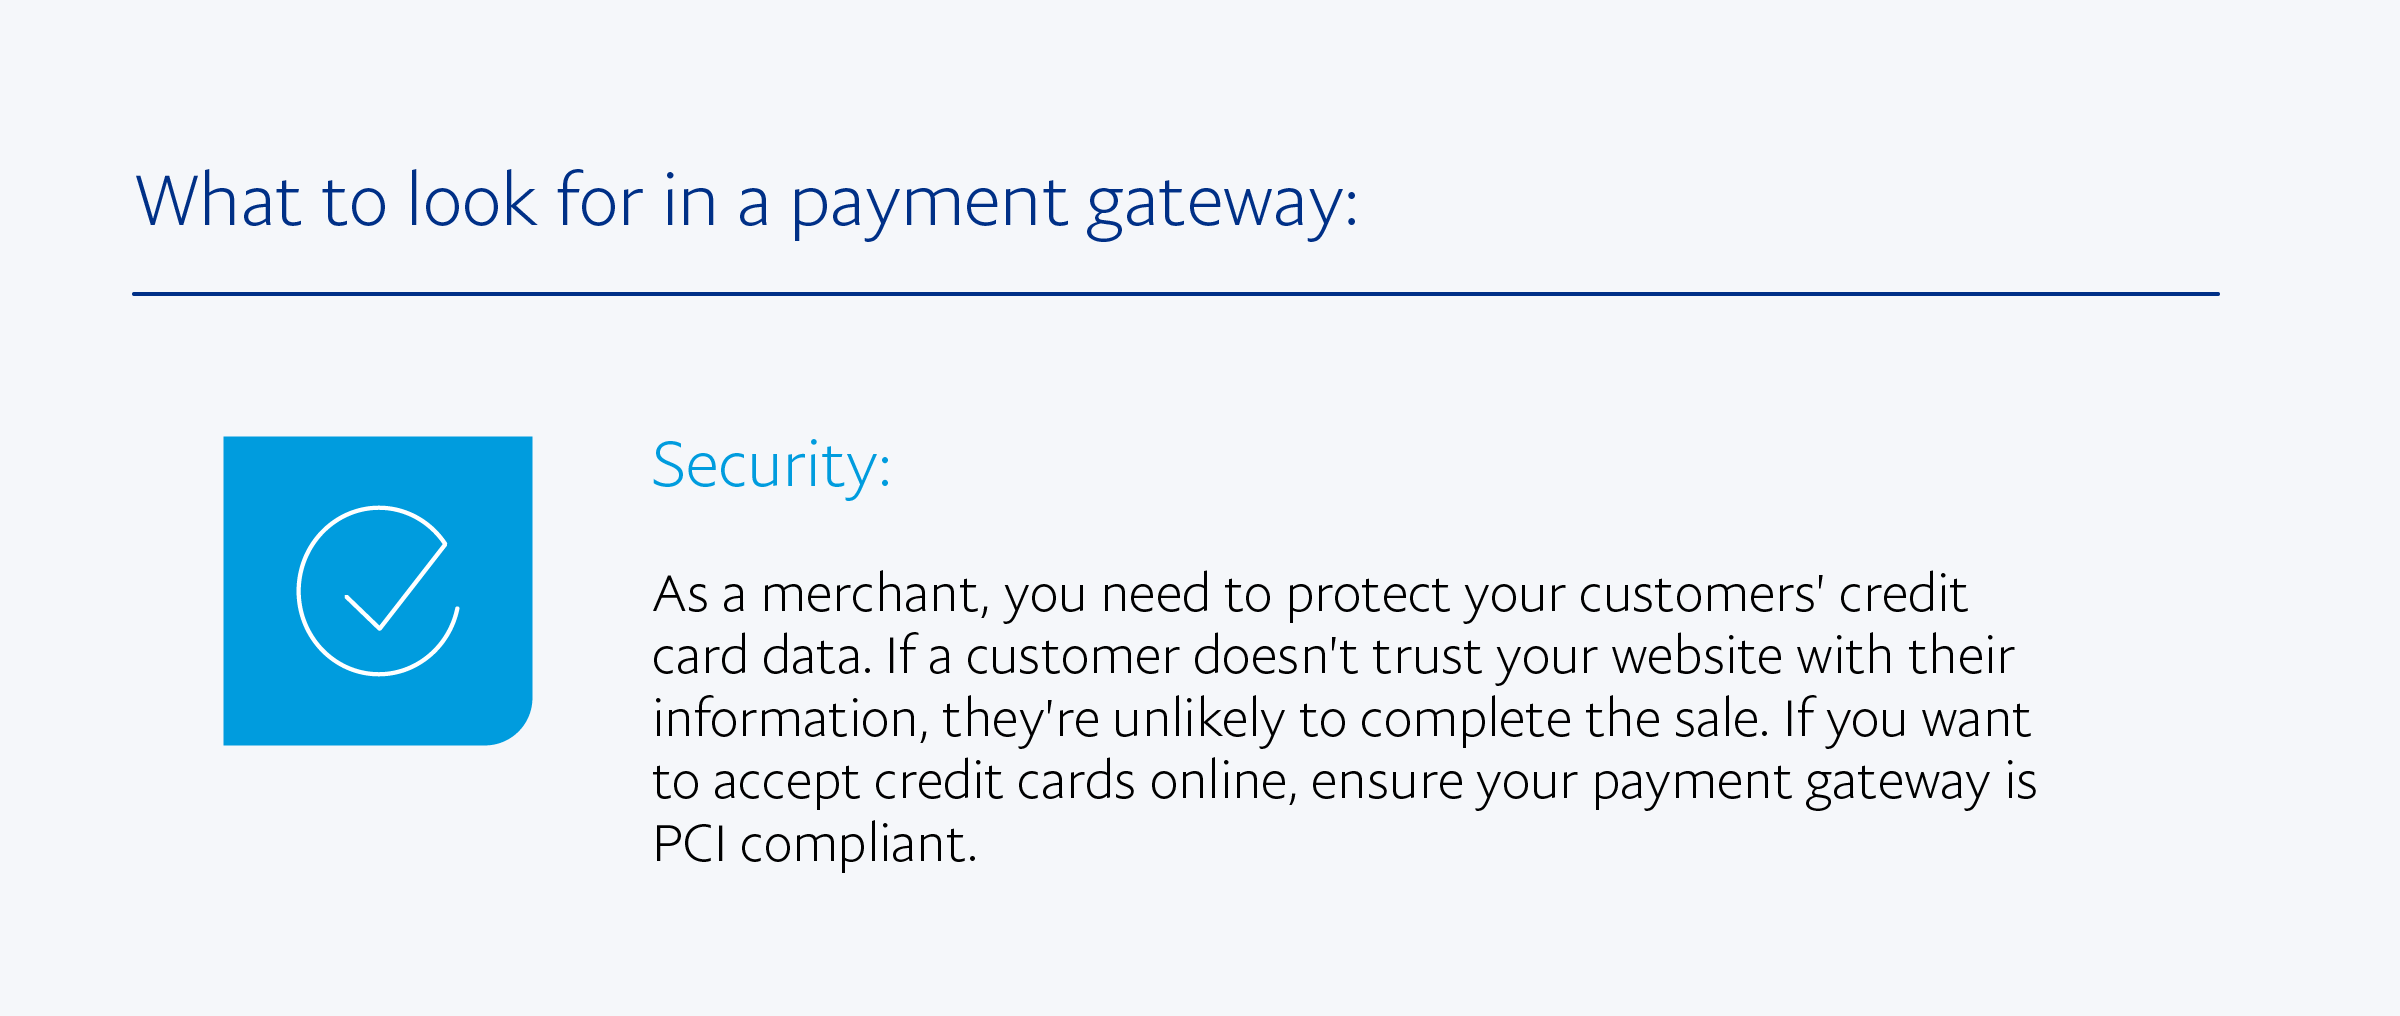 Security: As a merchant, you need to protect your customers' credit card data. If a customer doesn't trust your website with their information, they're unlikely to complete the sale. If you want to accept credit cards online, ensure your payment gateway is PCI compliant.